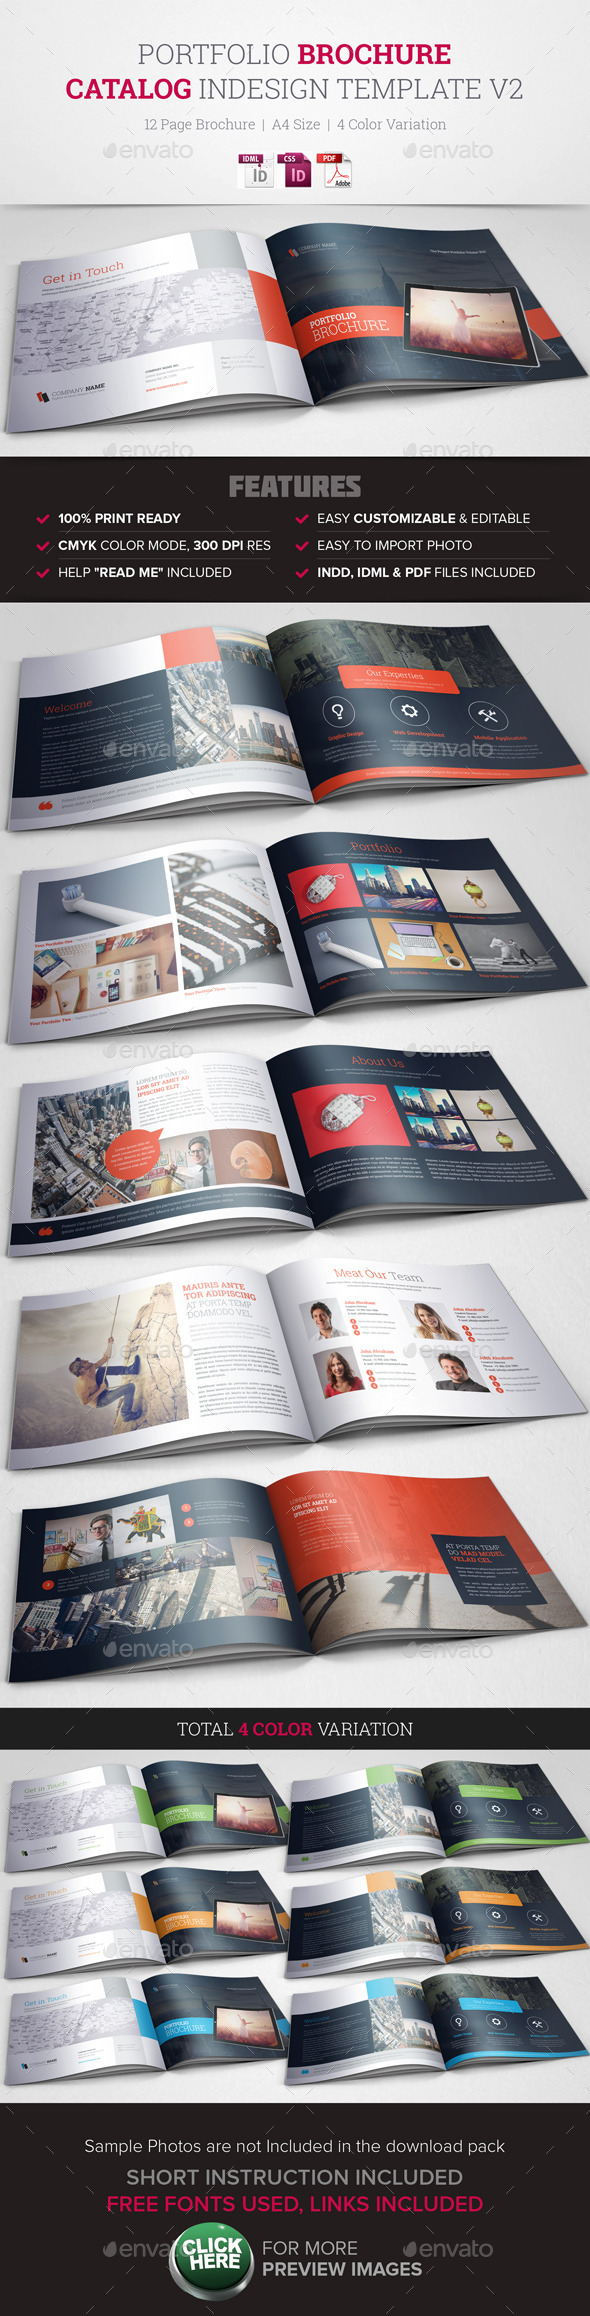 GraphicRiver Portfolio Brochure InDesign Template v2 10491396